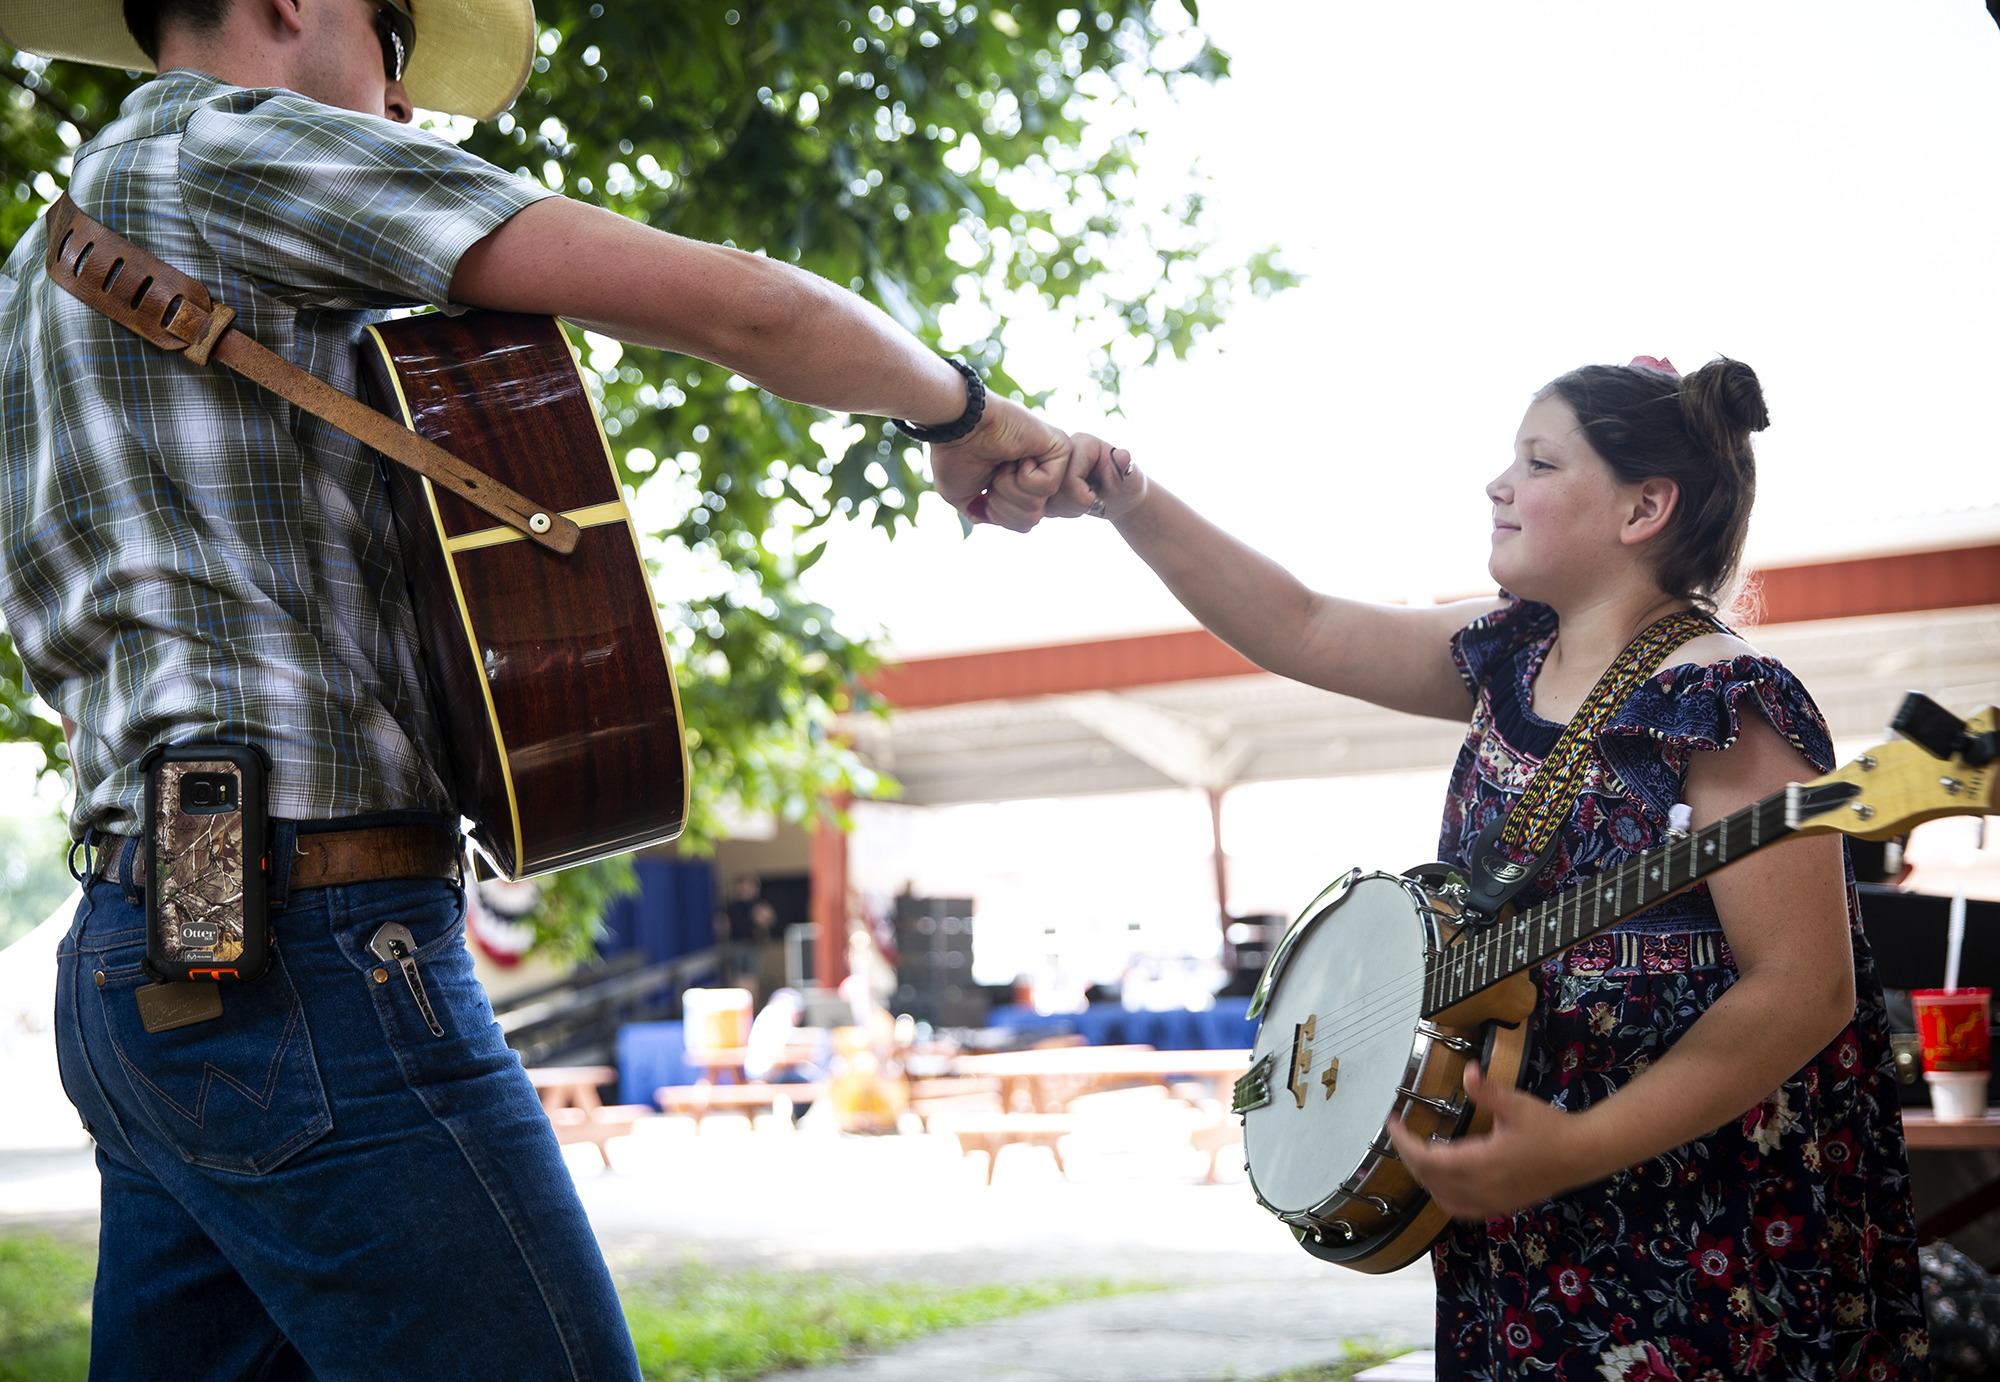 After practicing the pieces she'll play on stage, Judith Worthington gets a fist bump from her brother Matthew, a sign she's good to go for her performance in the Fiddle and Banjo Contest on the Lincoln Stage at the Illinois State Fair Saturday, Aug. 11, 2018 on the fairgrounds in Springfield, Ill. [Rich Saal/The State Journal-Register]